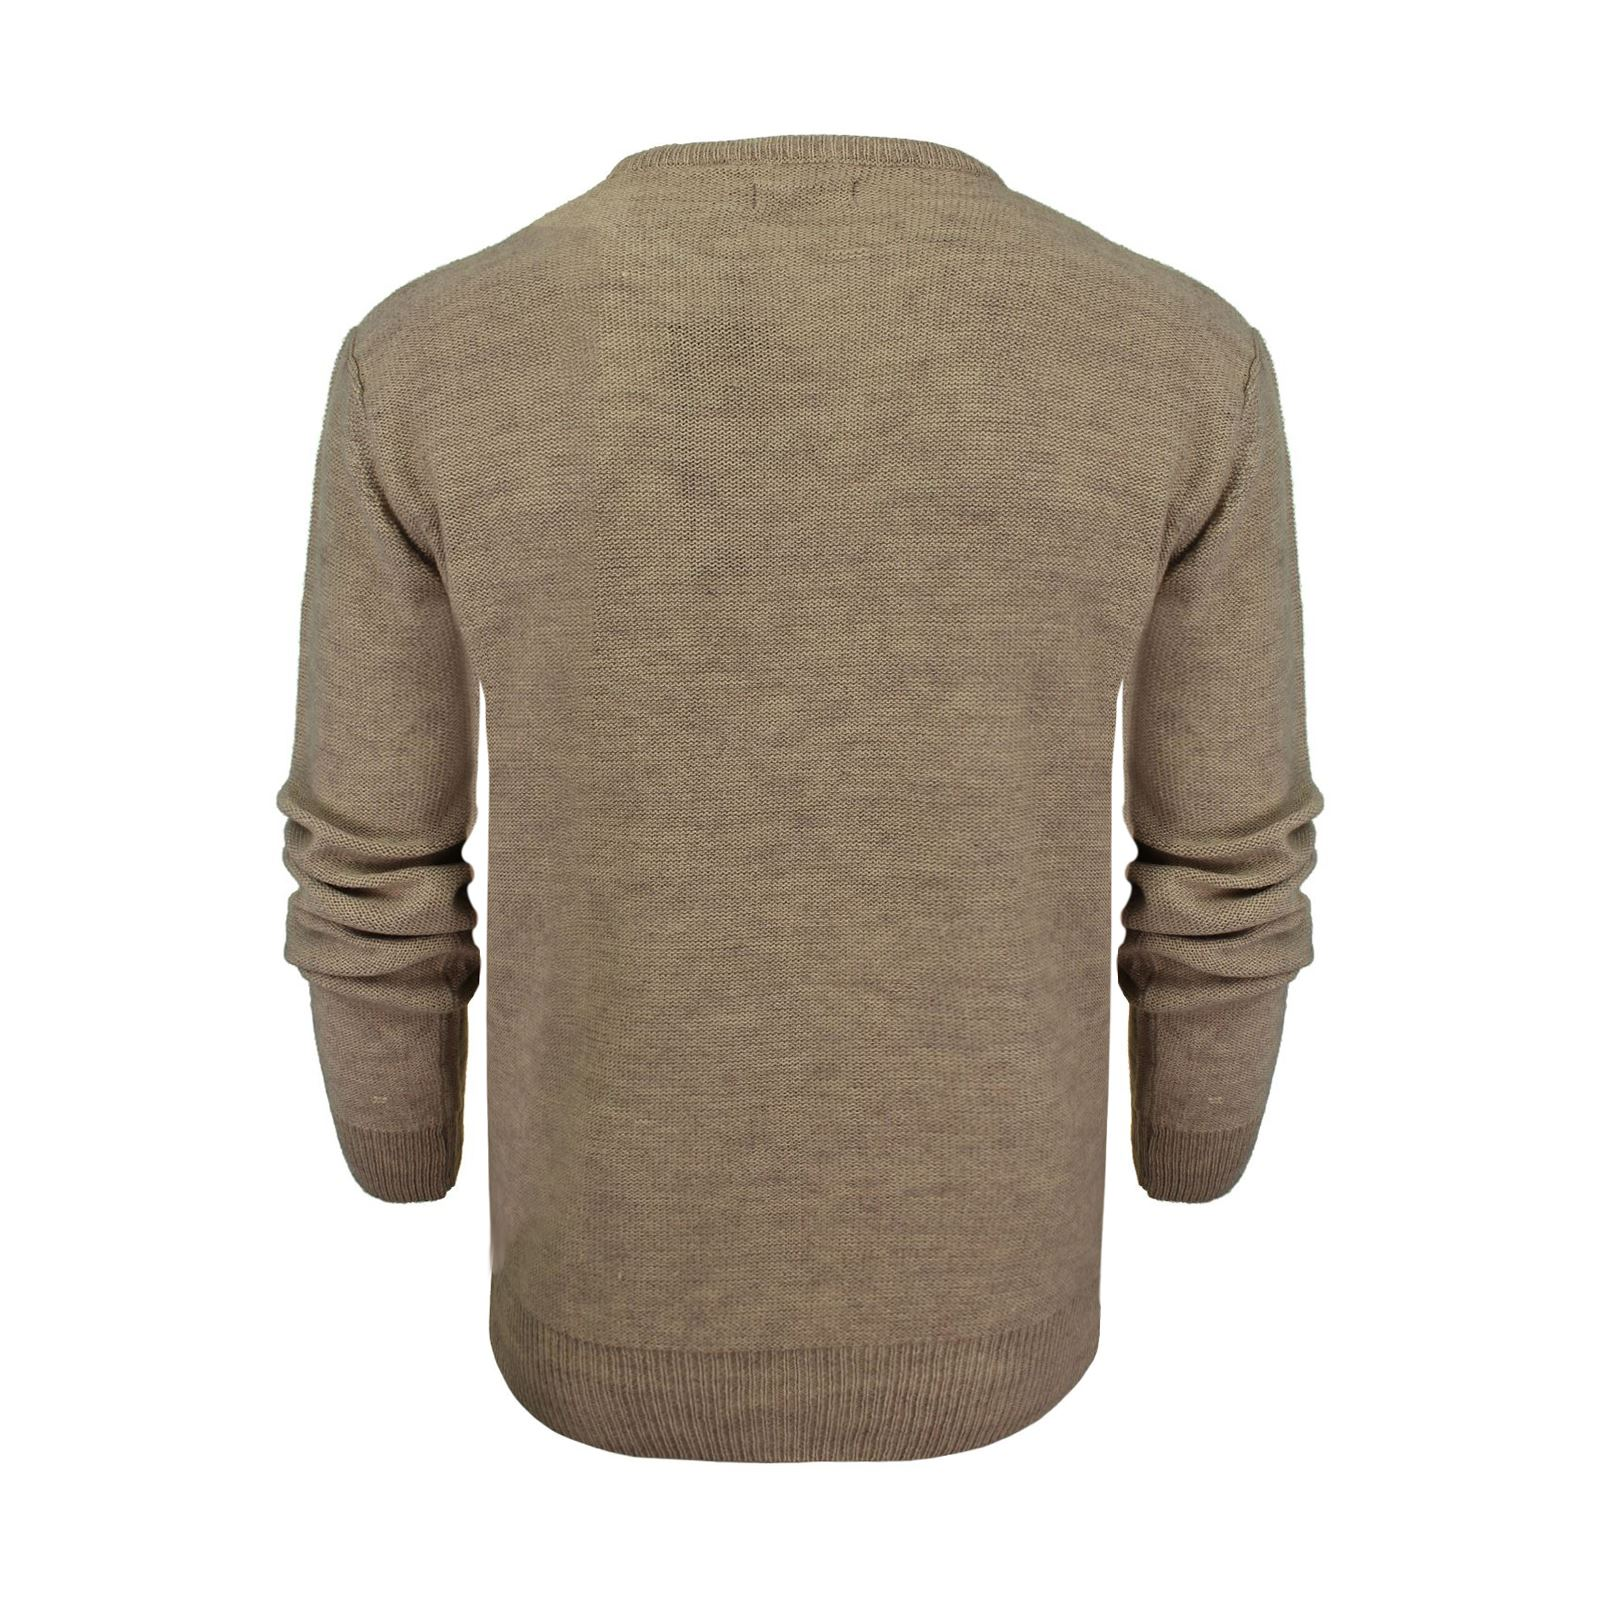 Mens-Jumper-Brave-Soul-Bayard-Wool-Mix-Crew-Neck-Knitted-Sweater thumbnail 3